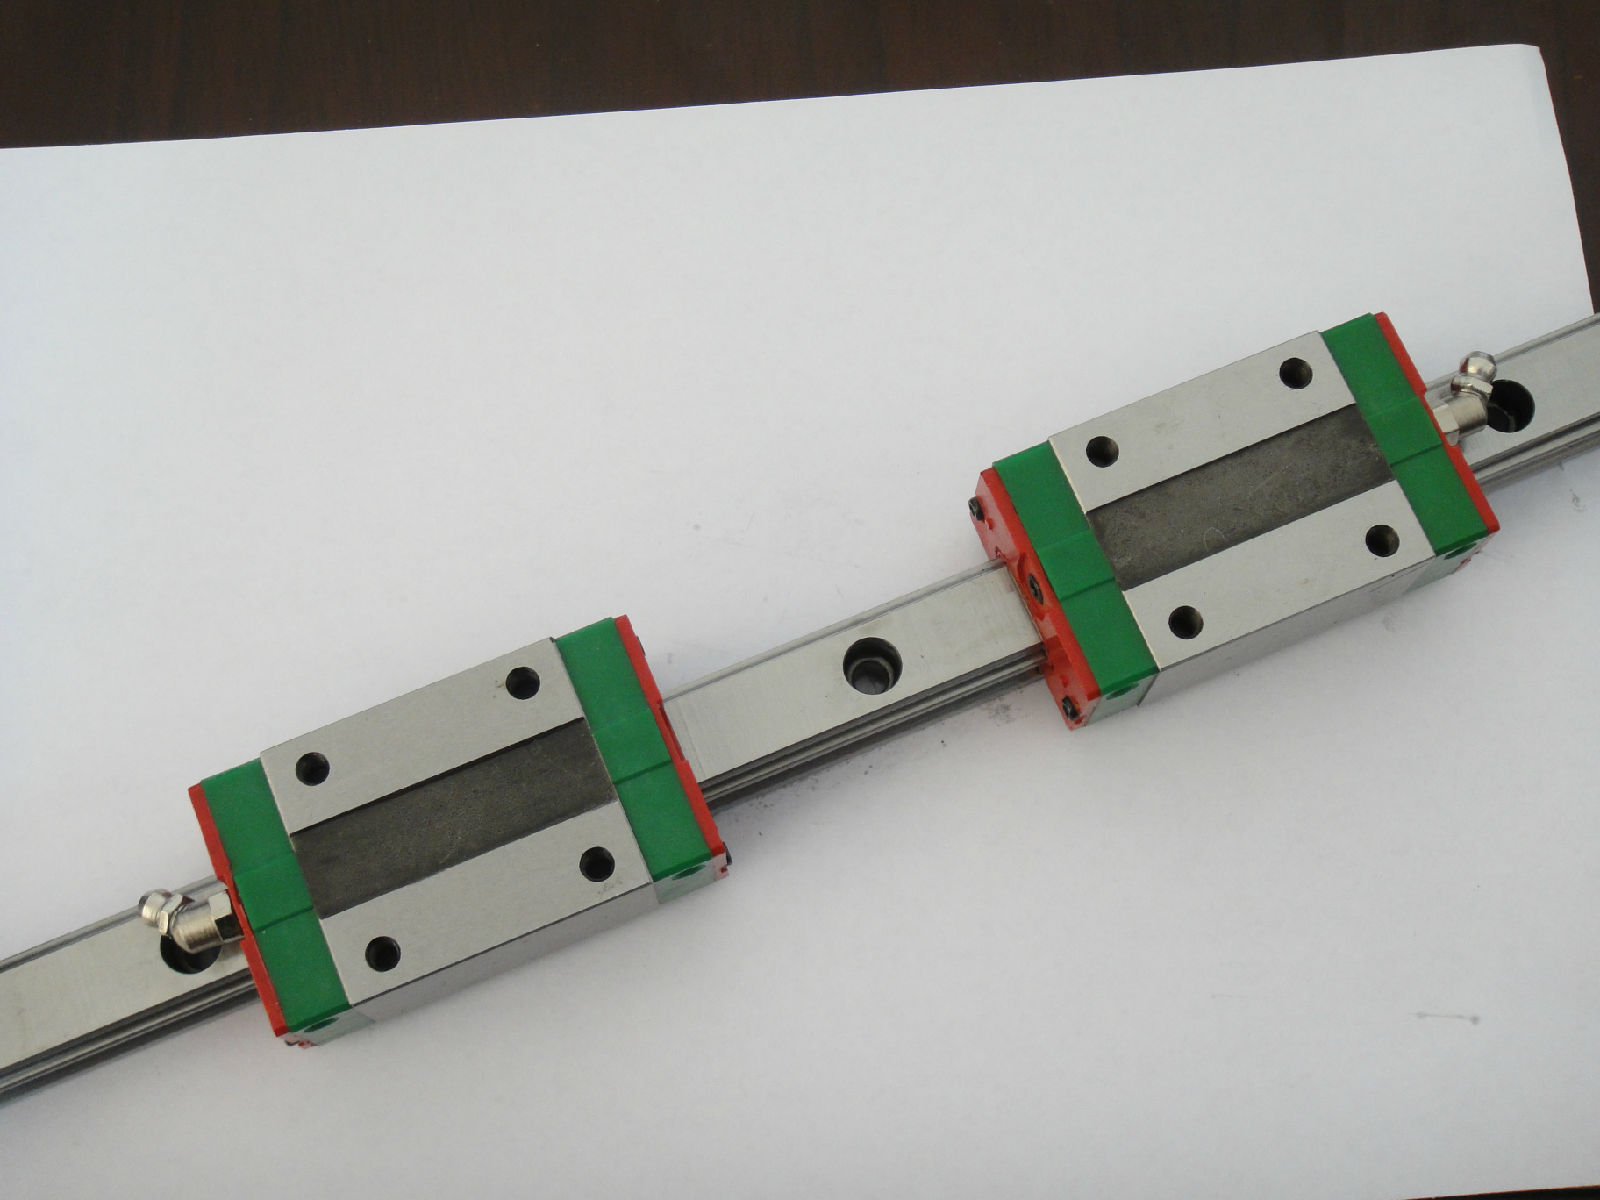 100% genuine HIWIN linear guide HGR30-1000MM block for Taiwan 100% genuine hiwin linear guide hgr30 300mm block for taiwan